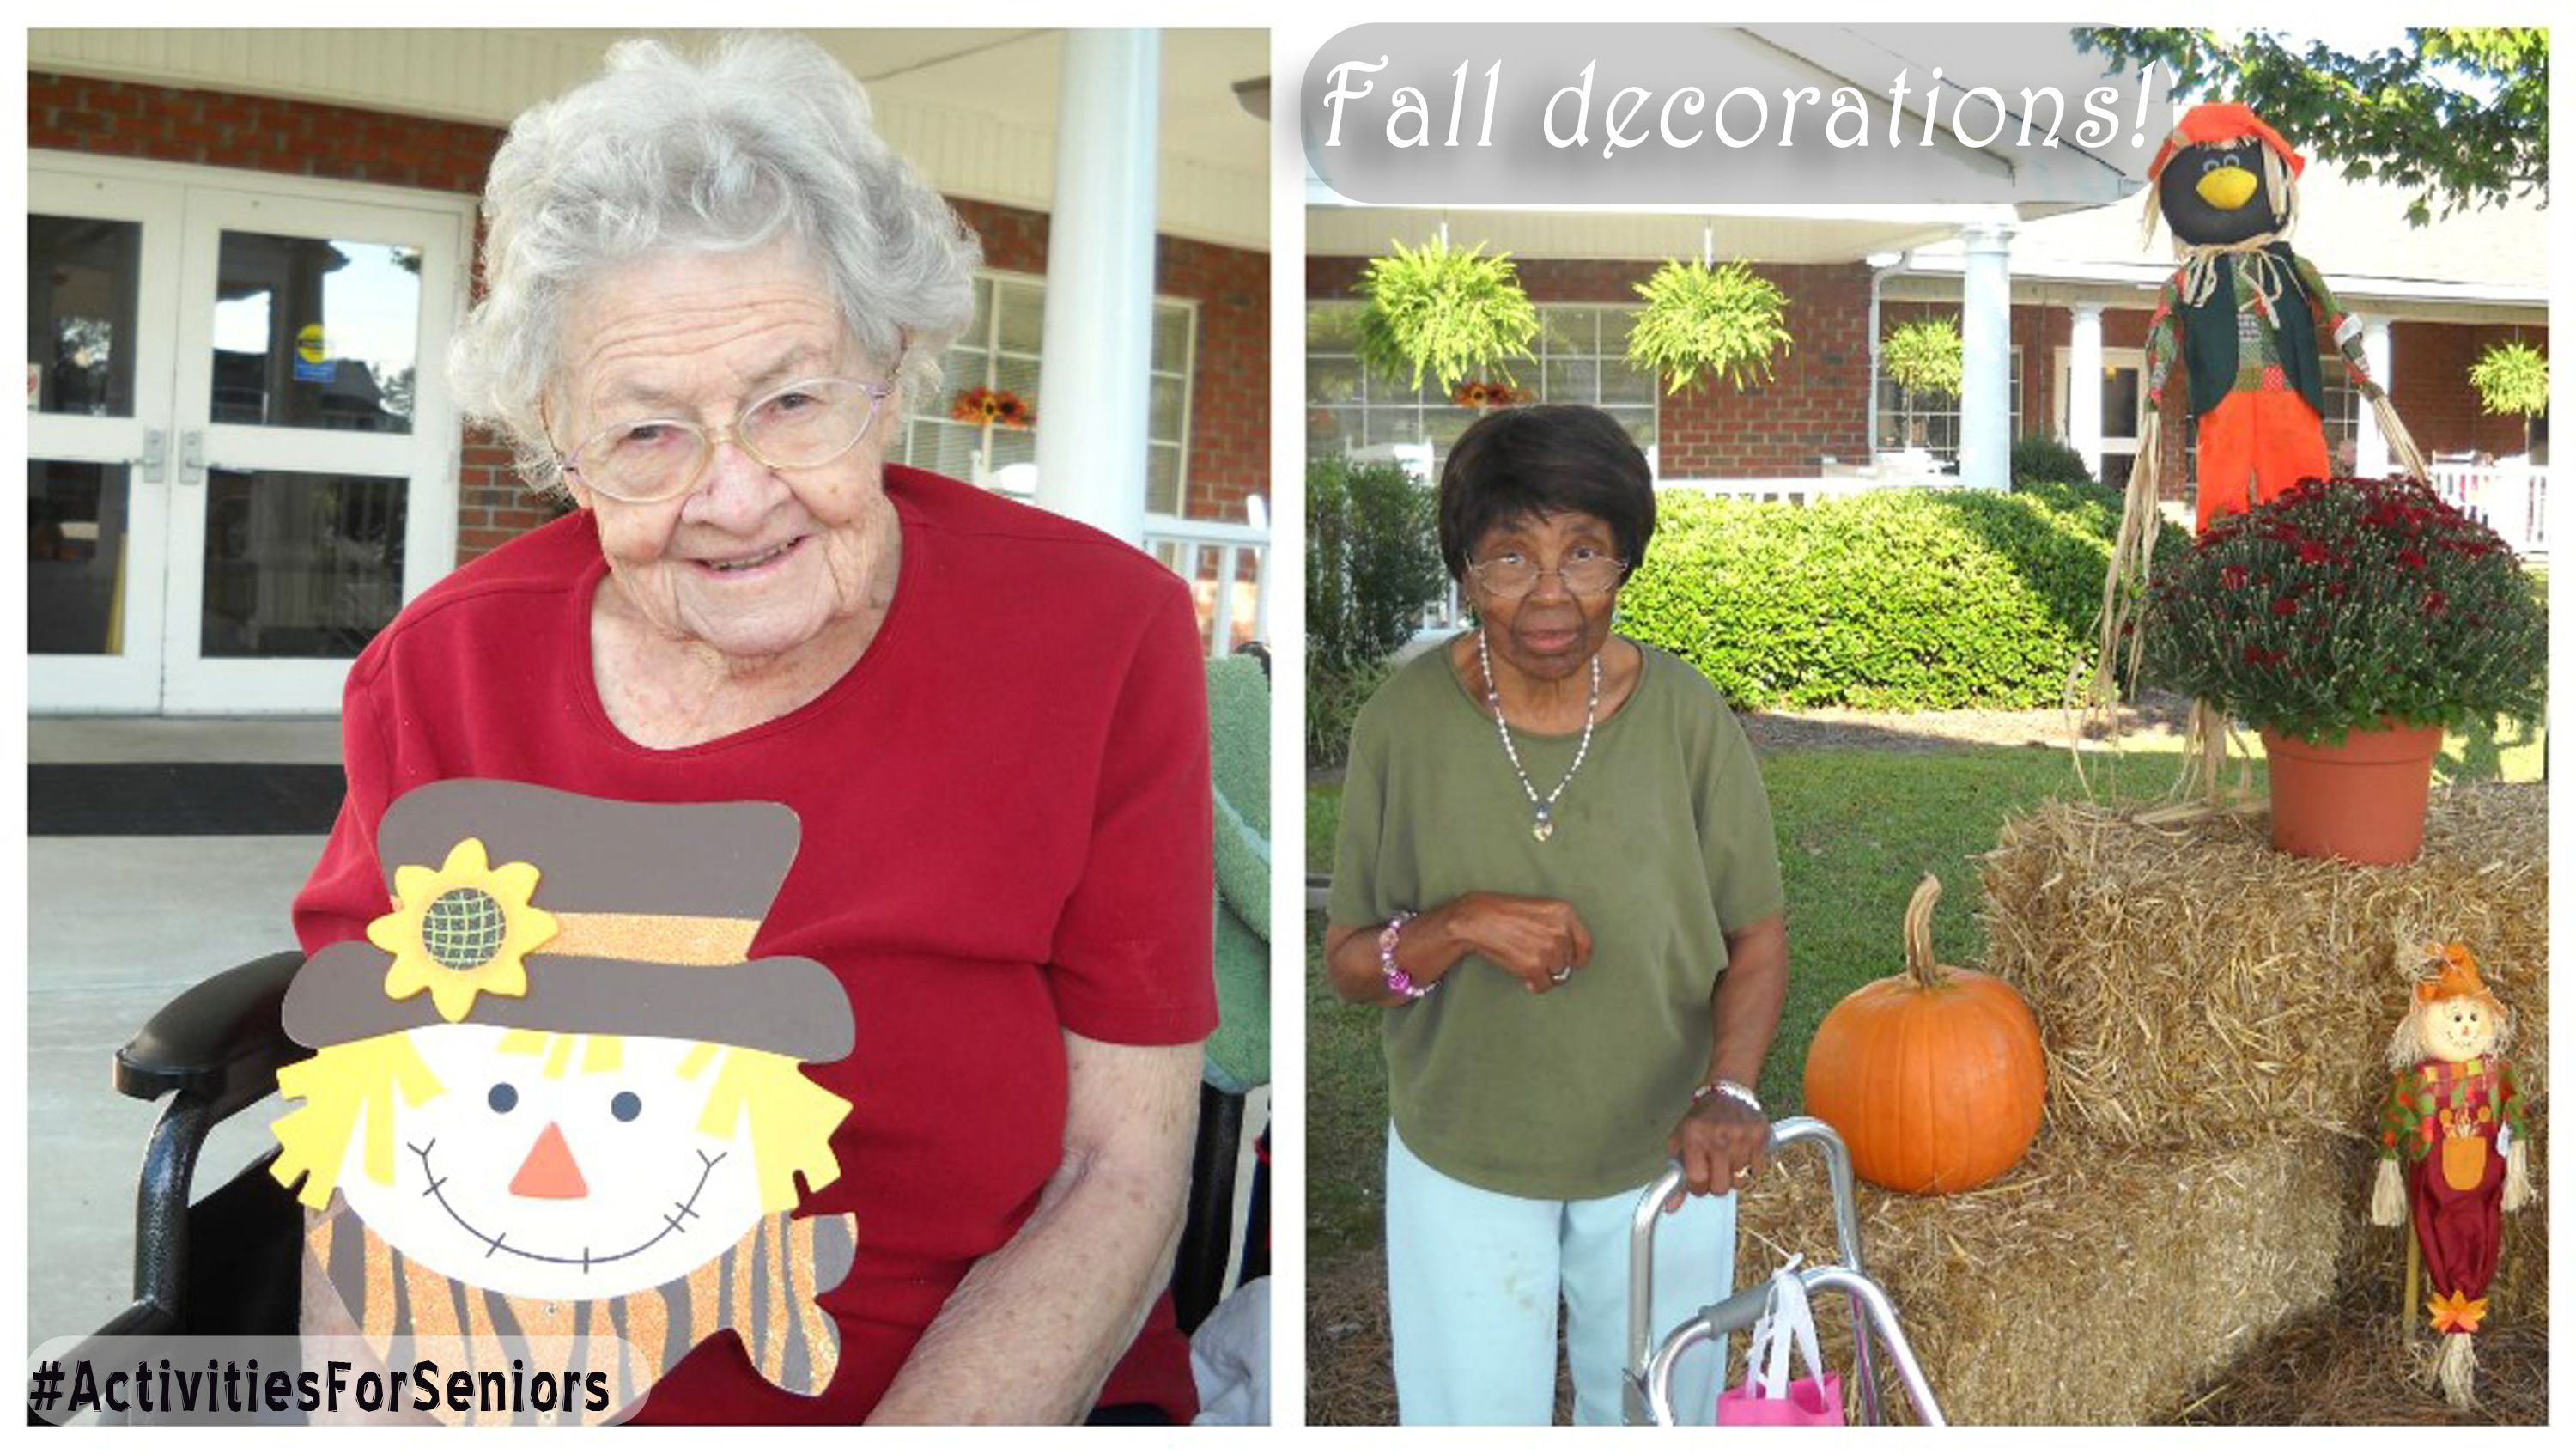 Decorating For Fall The Perfect Senior Activity Activitiesforseniors